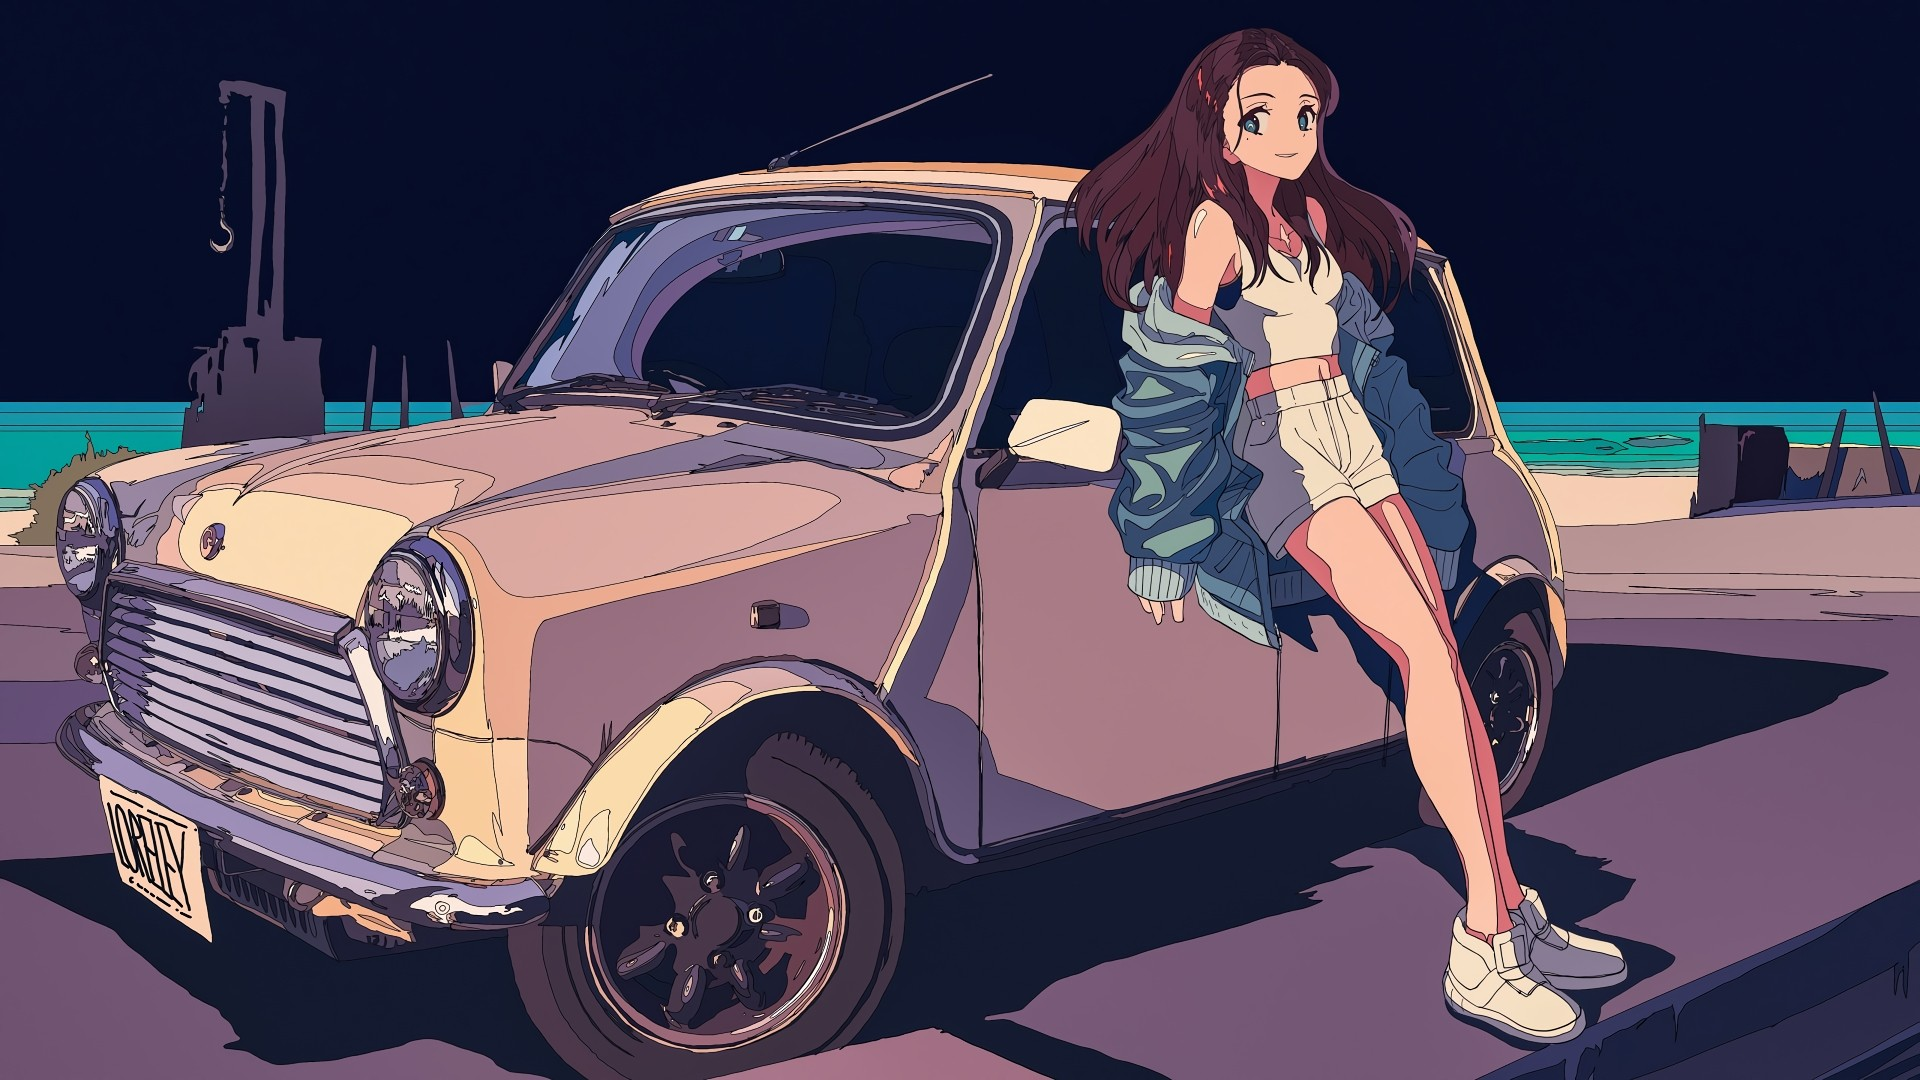 Anime Girl With Car Wallpaper Free Download